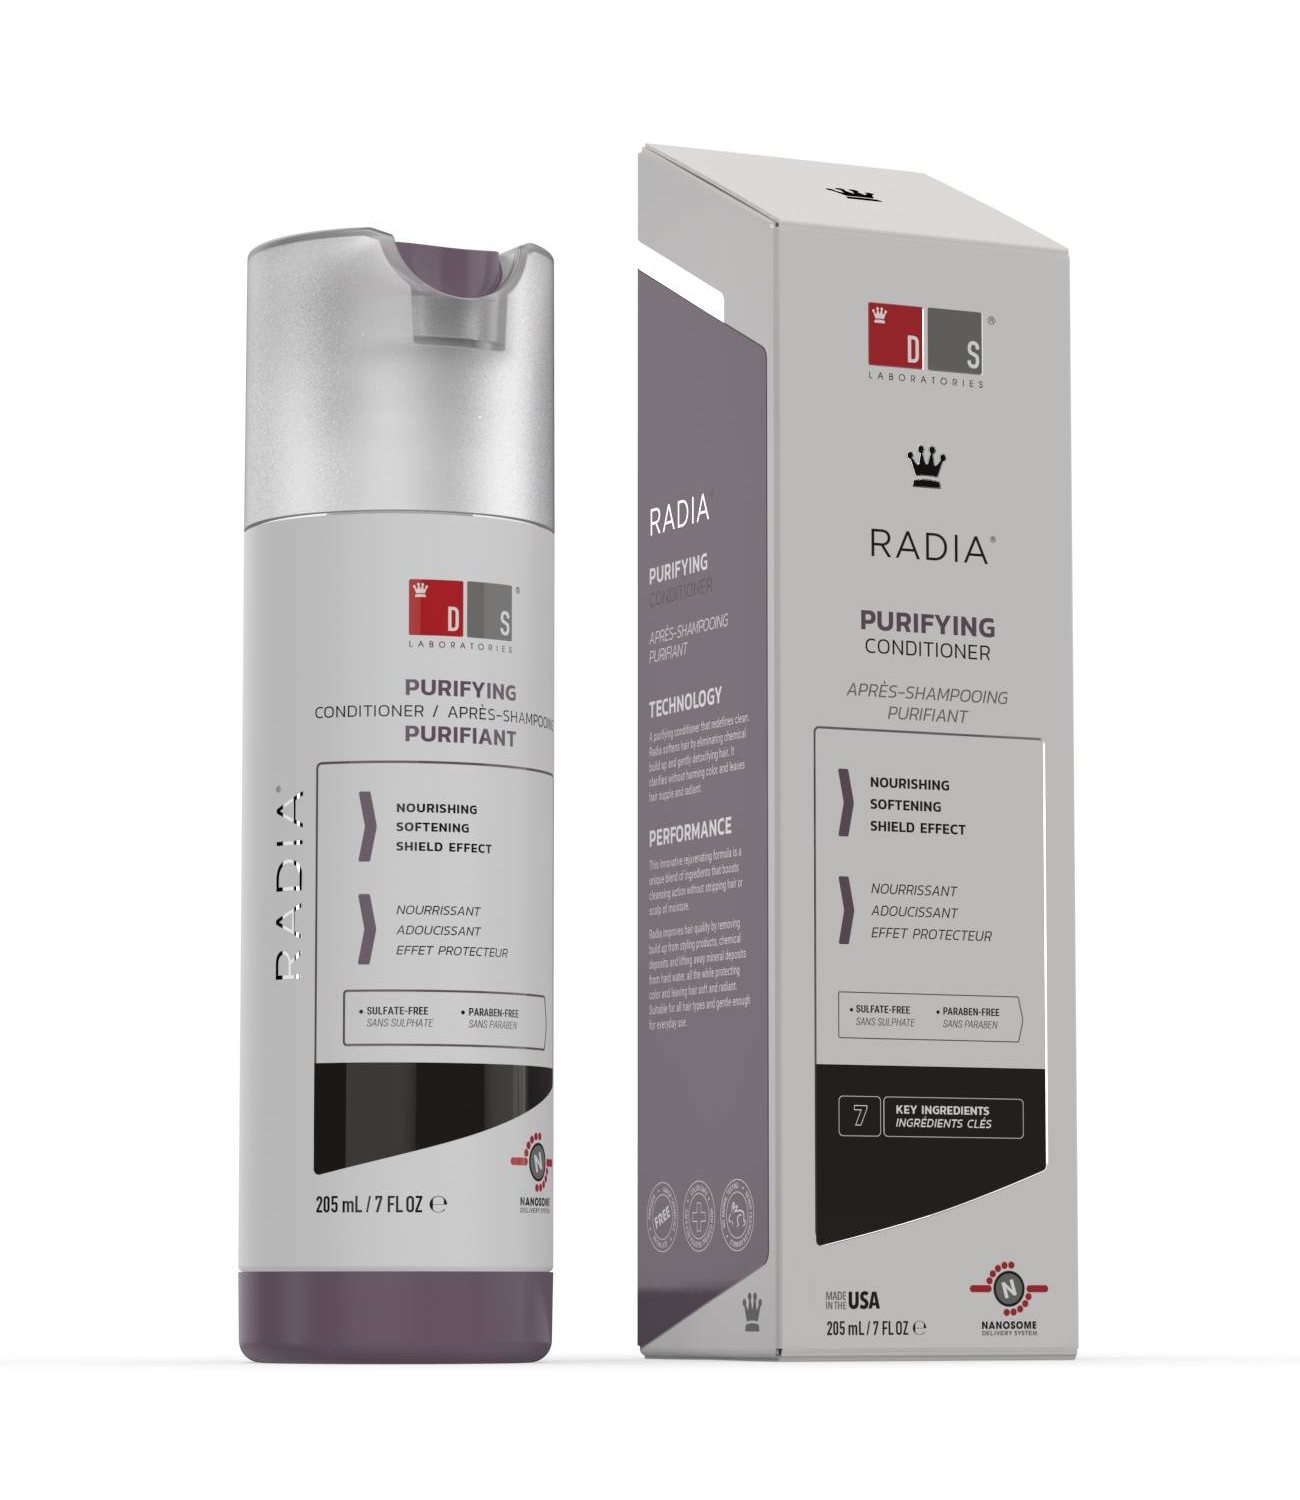 Radia | Purifying conditioner for dry, sensitive or irritated scalp